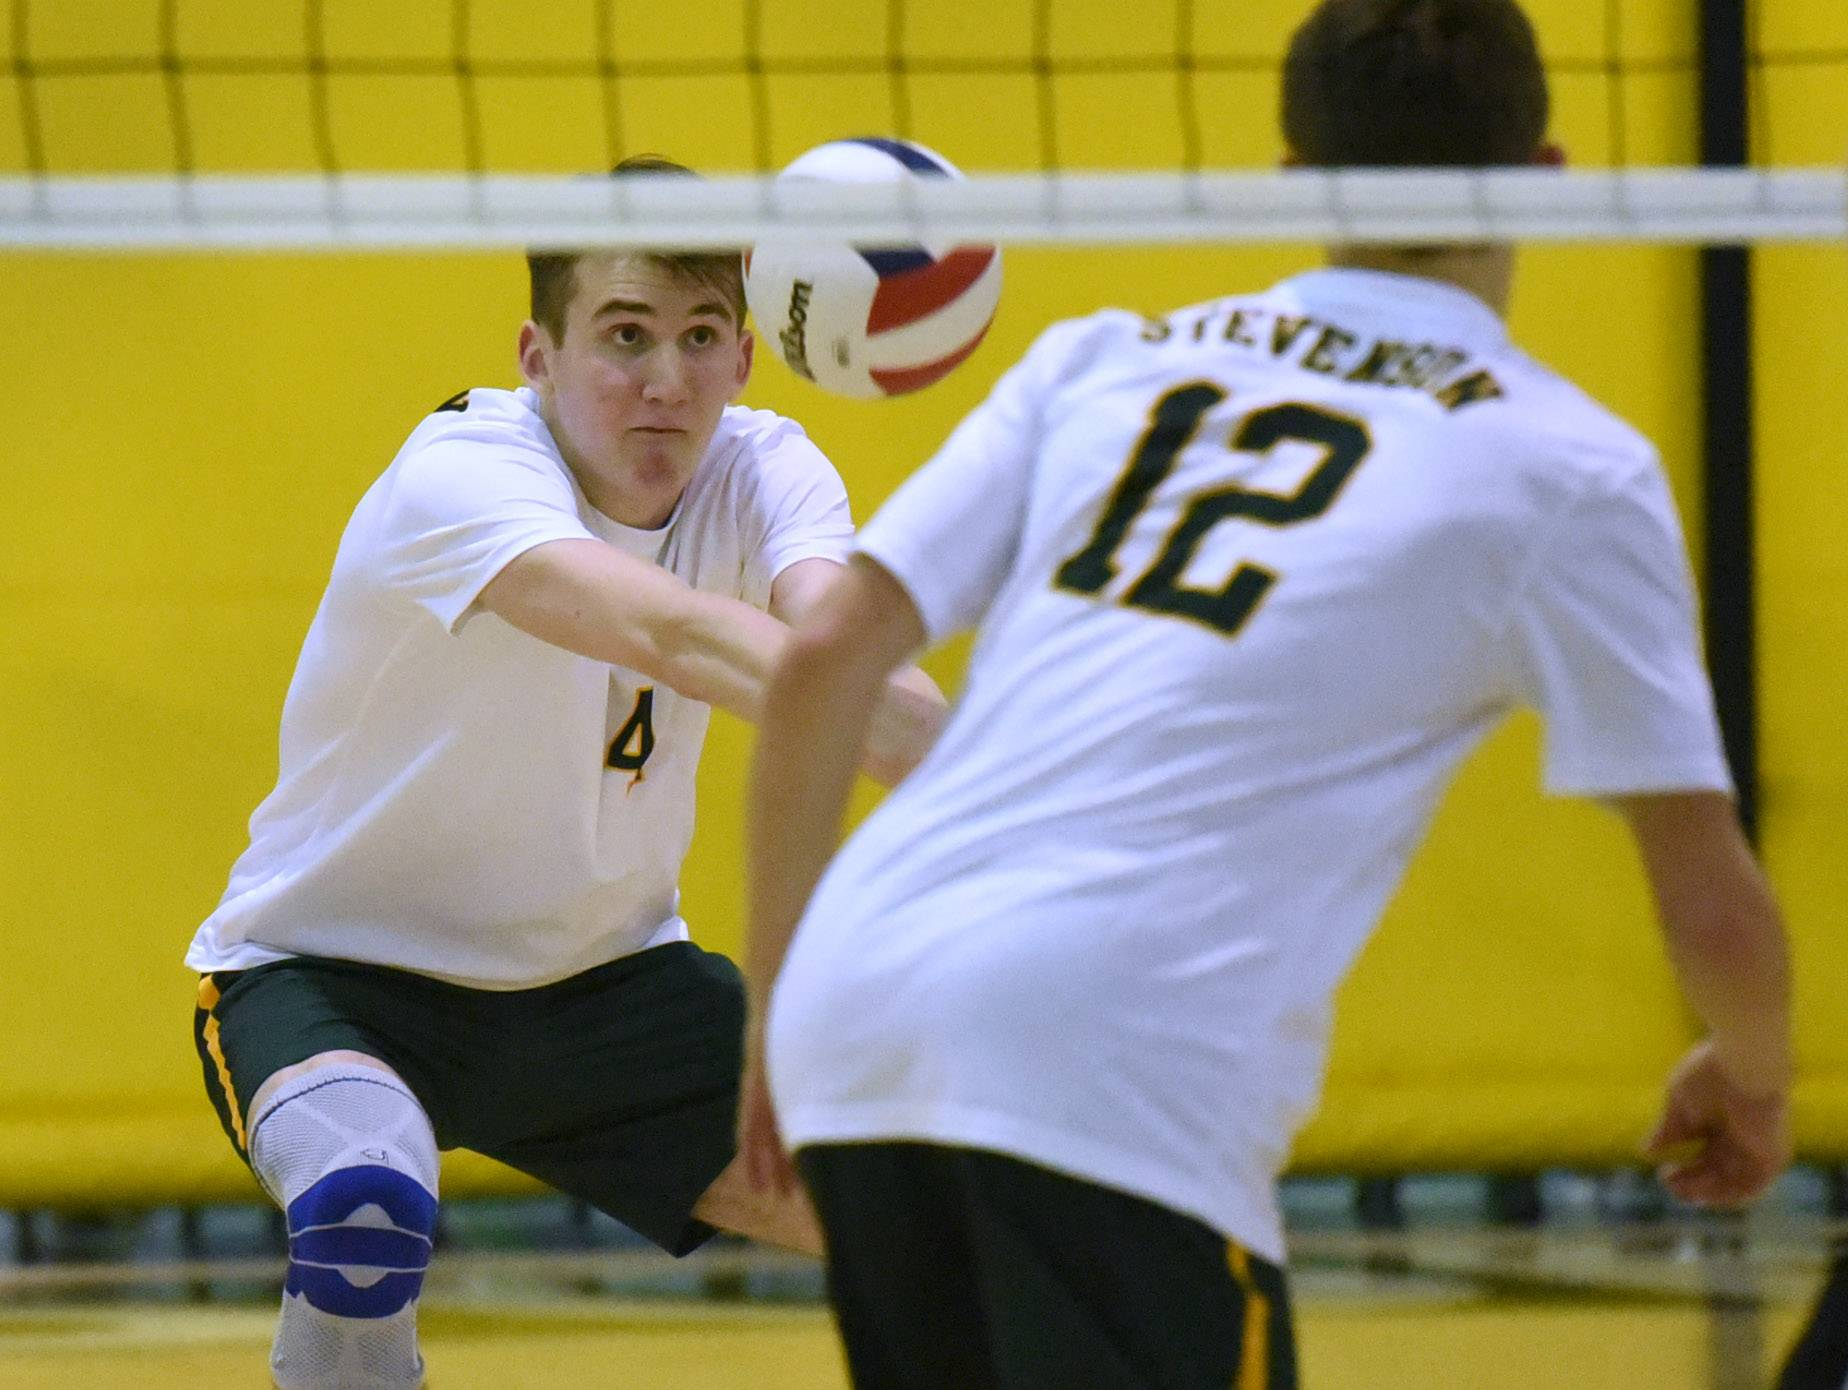 Stevenson's Grant Maleski, left, digs the ball during Monday night's boys volleyball match against Lakes in Lincolnshire.